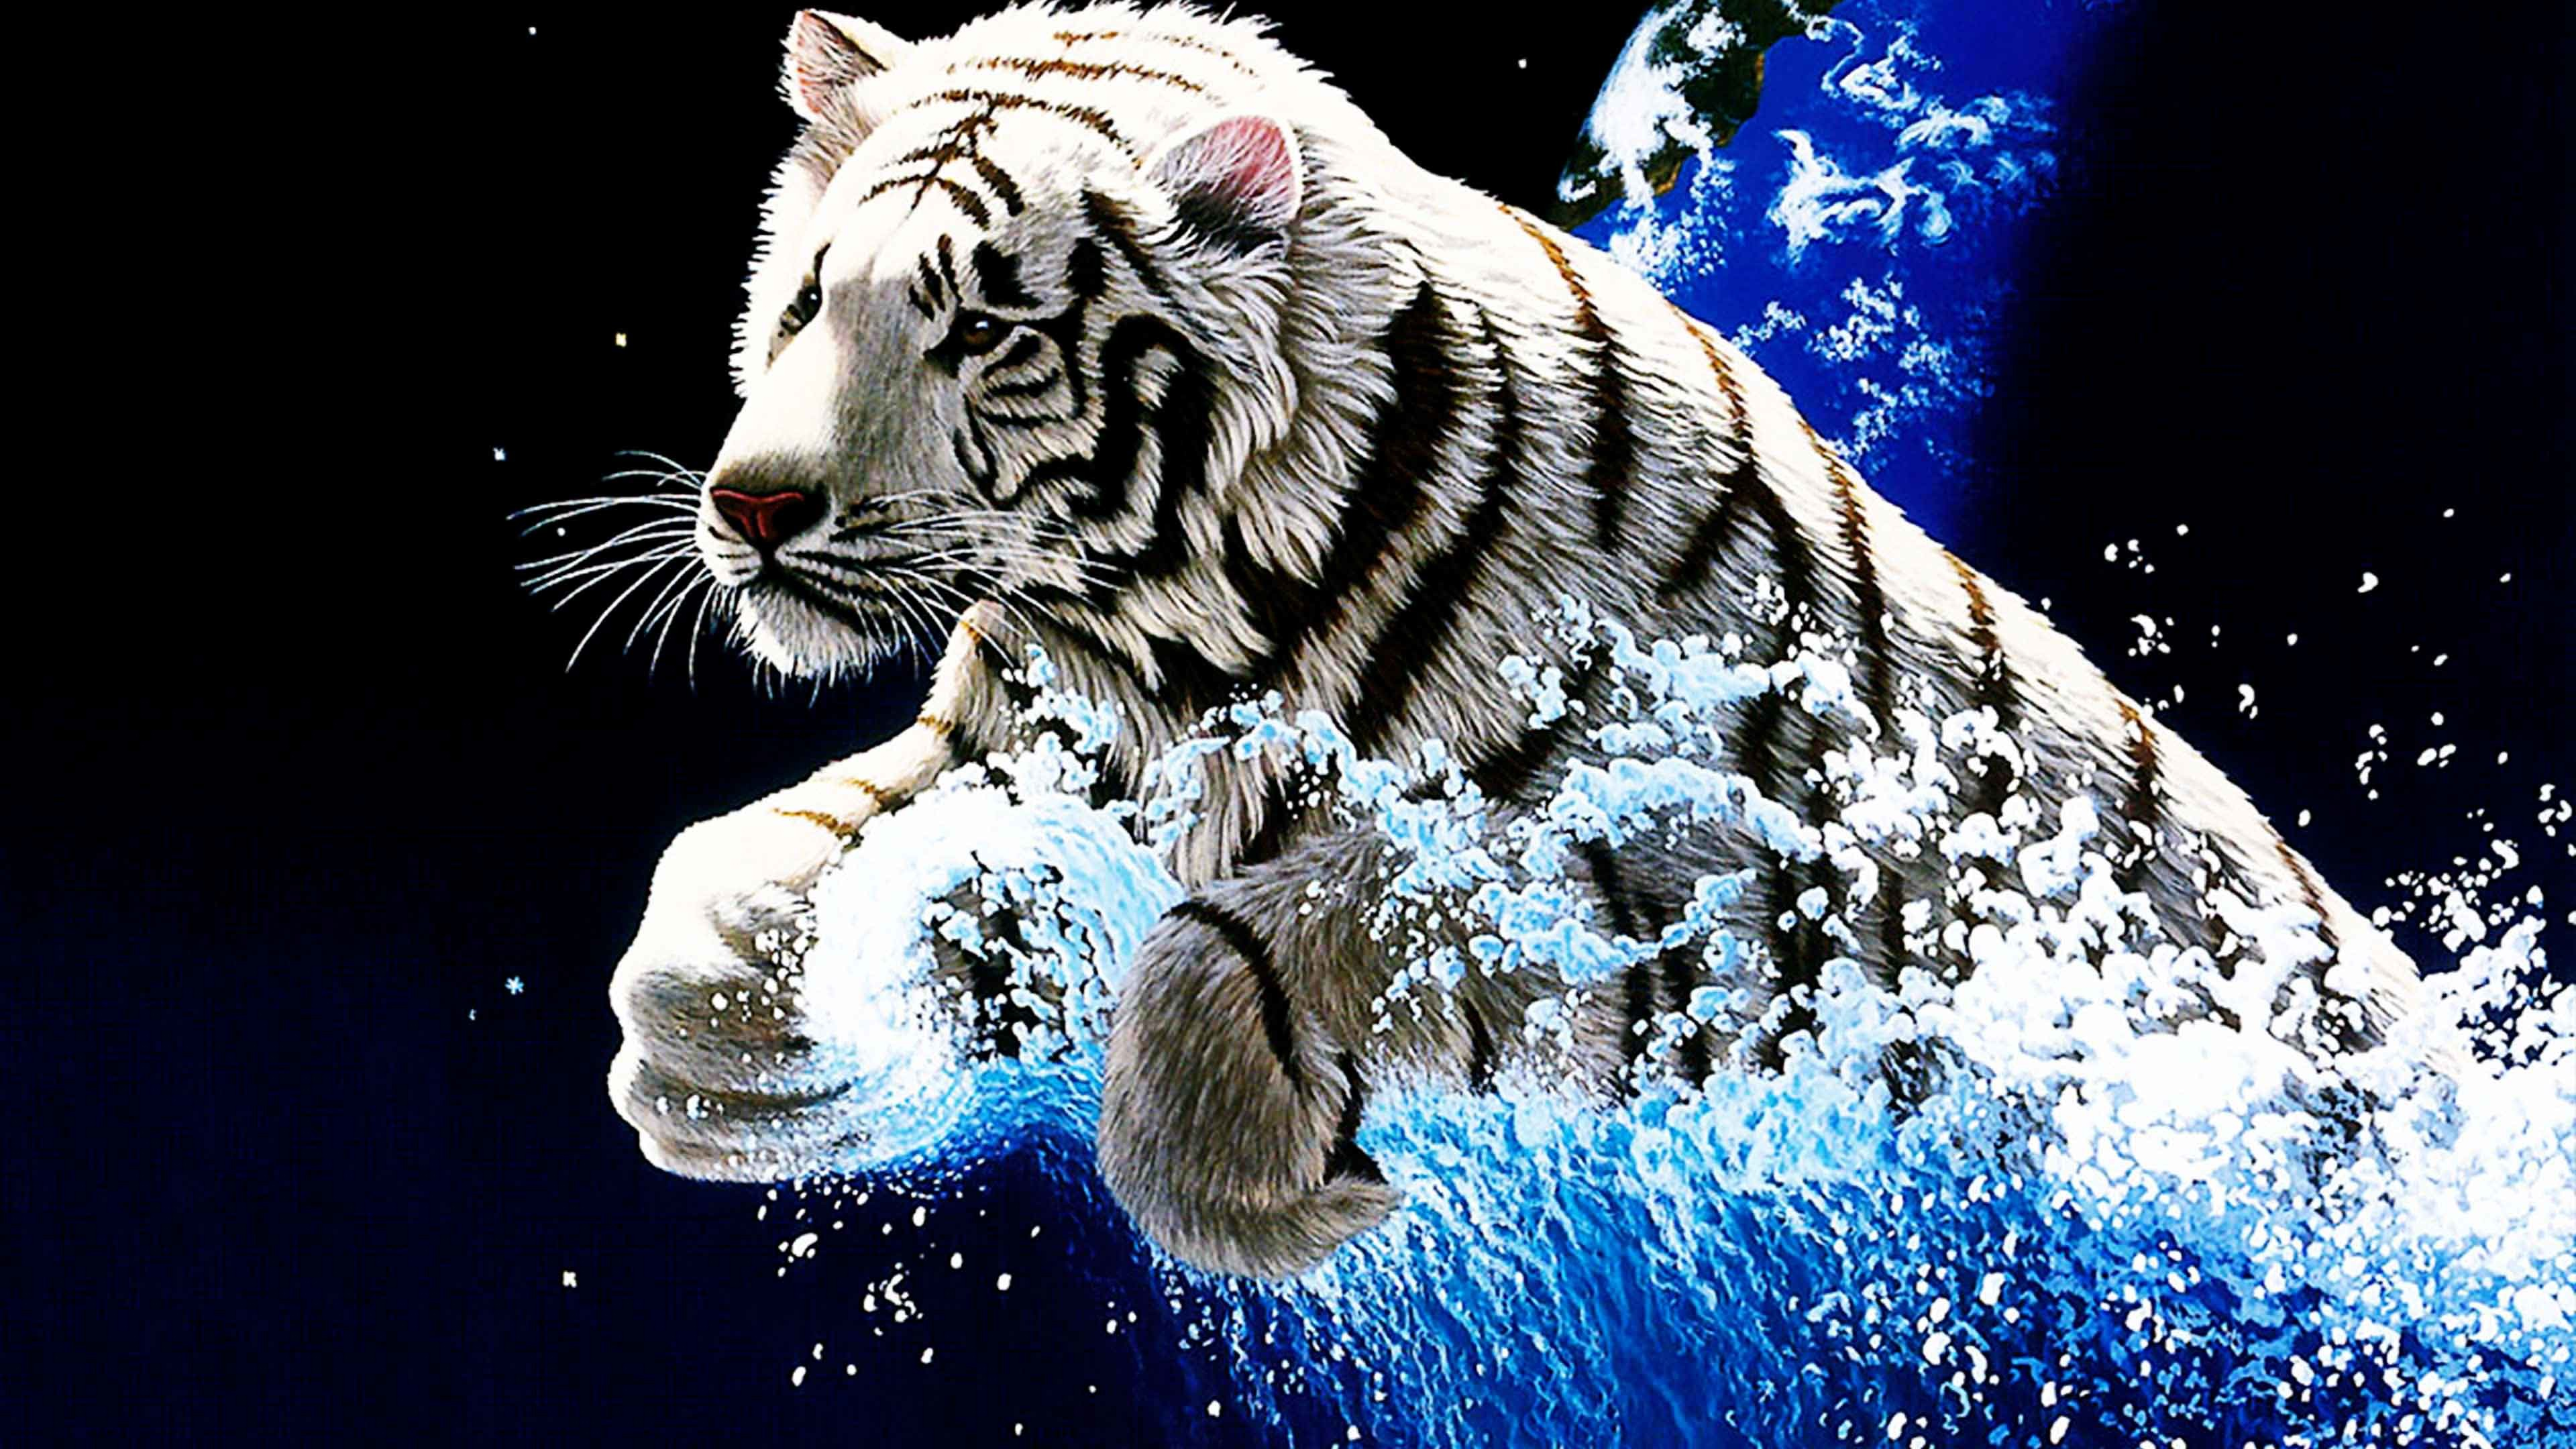 animated tiger wallpapers